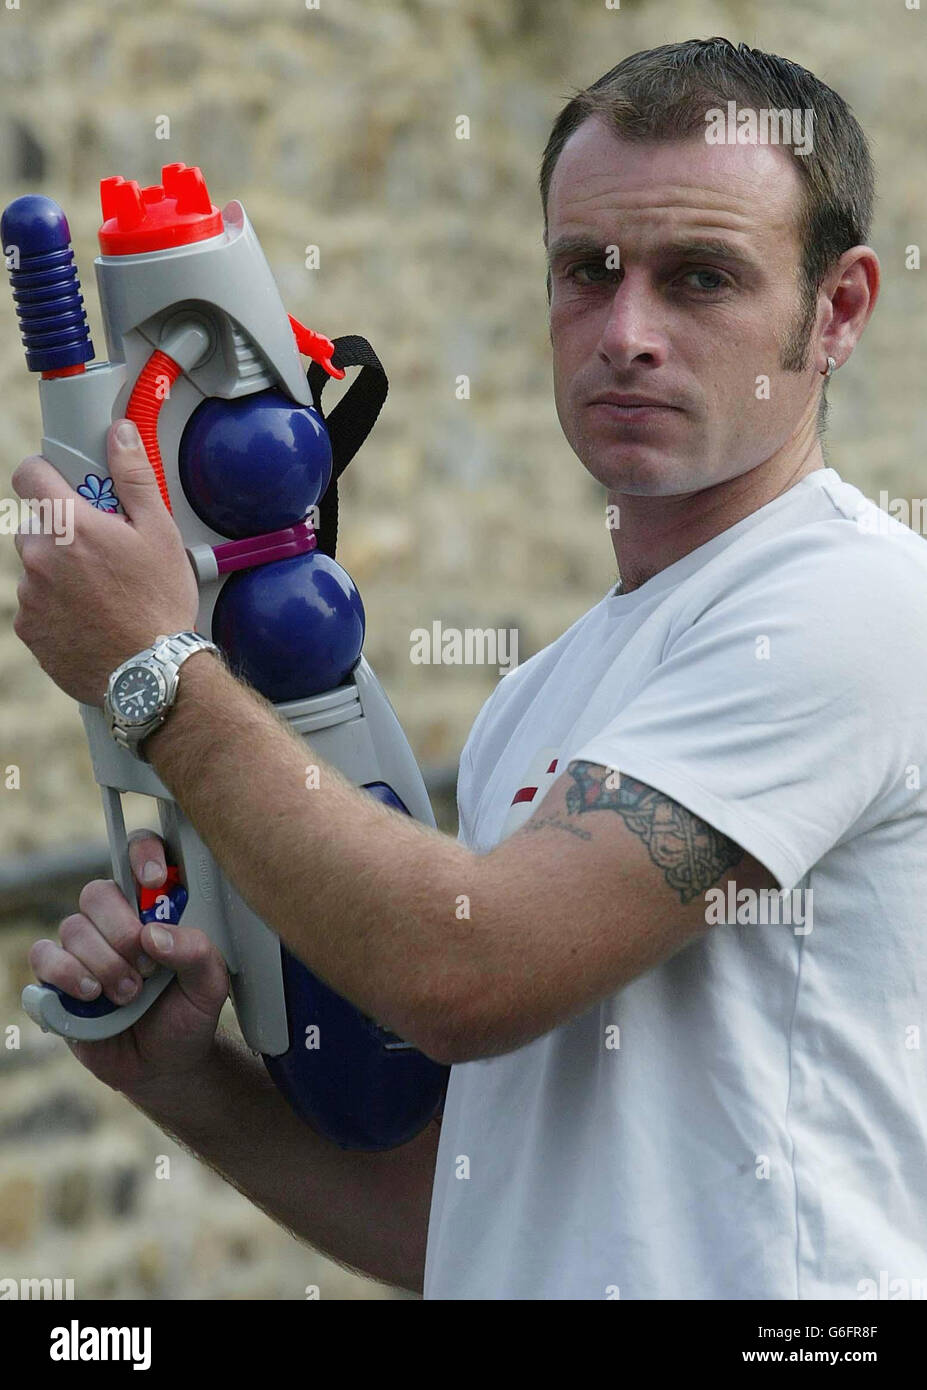 Gary Parker Water pistol fight / CS Spray by police - Stock Image